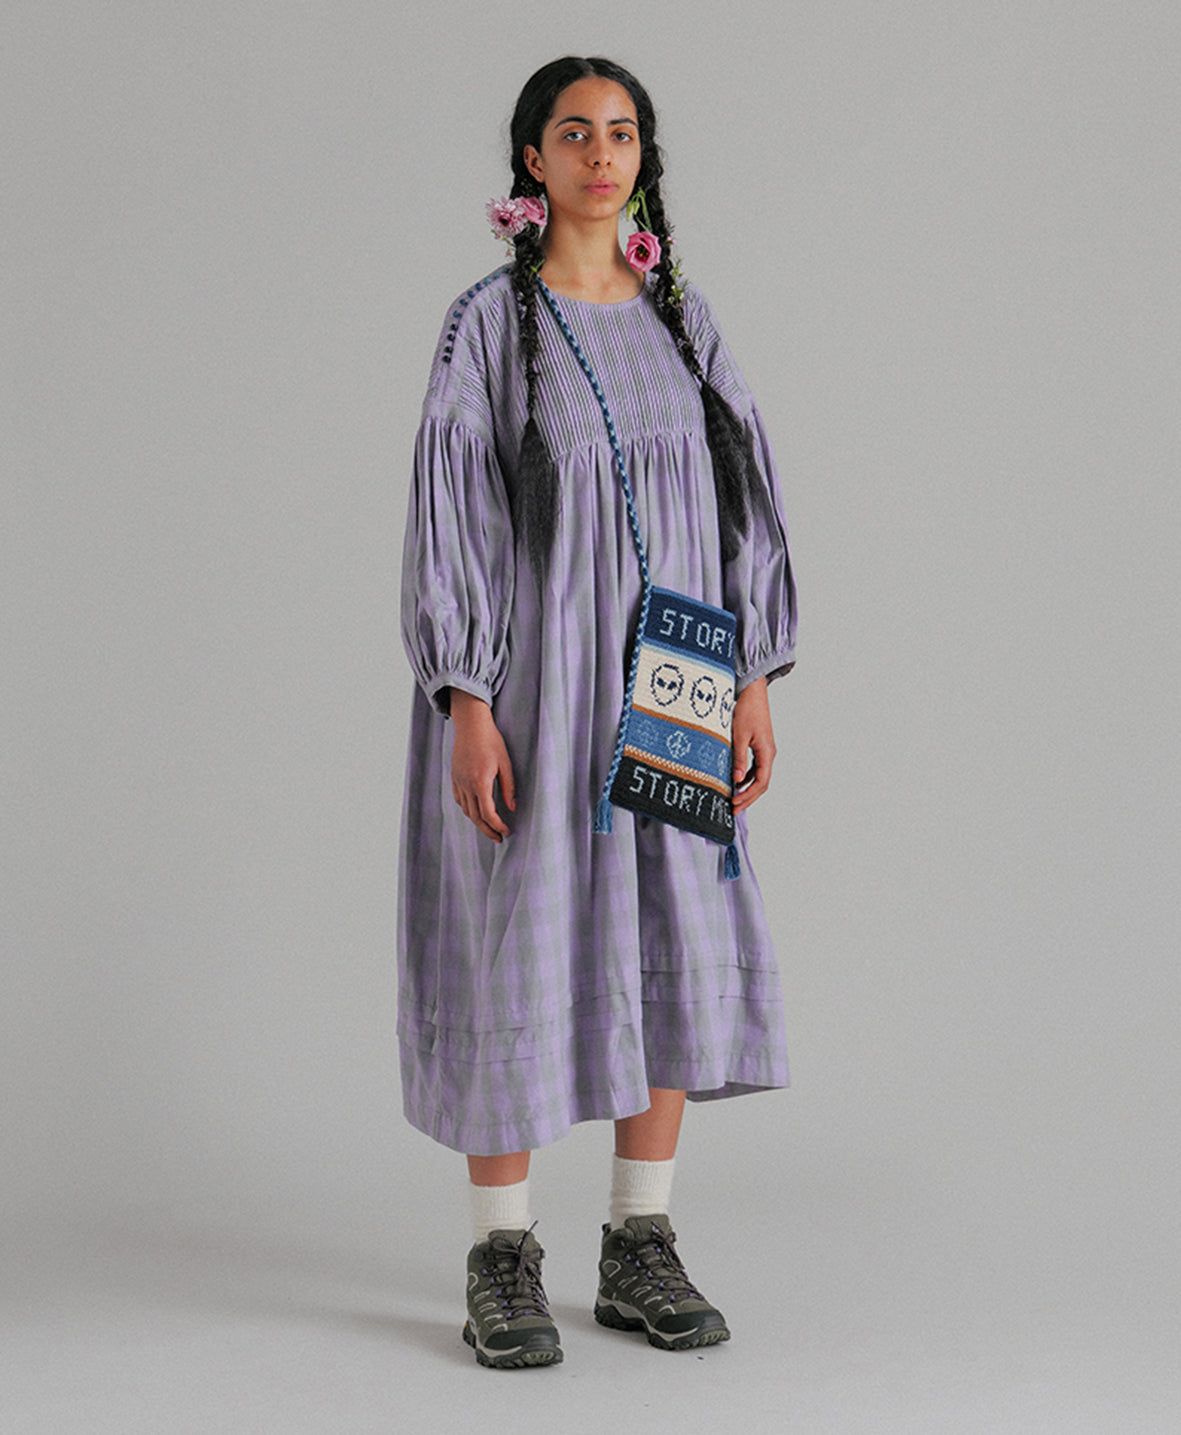 Mon Dress - Lavender Jam Fat Gingham